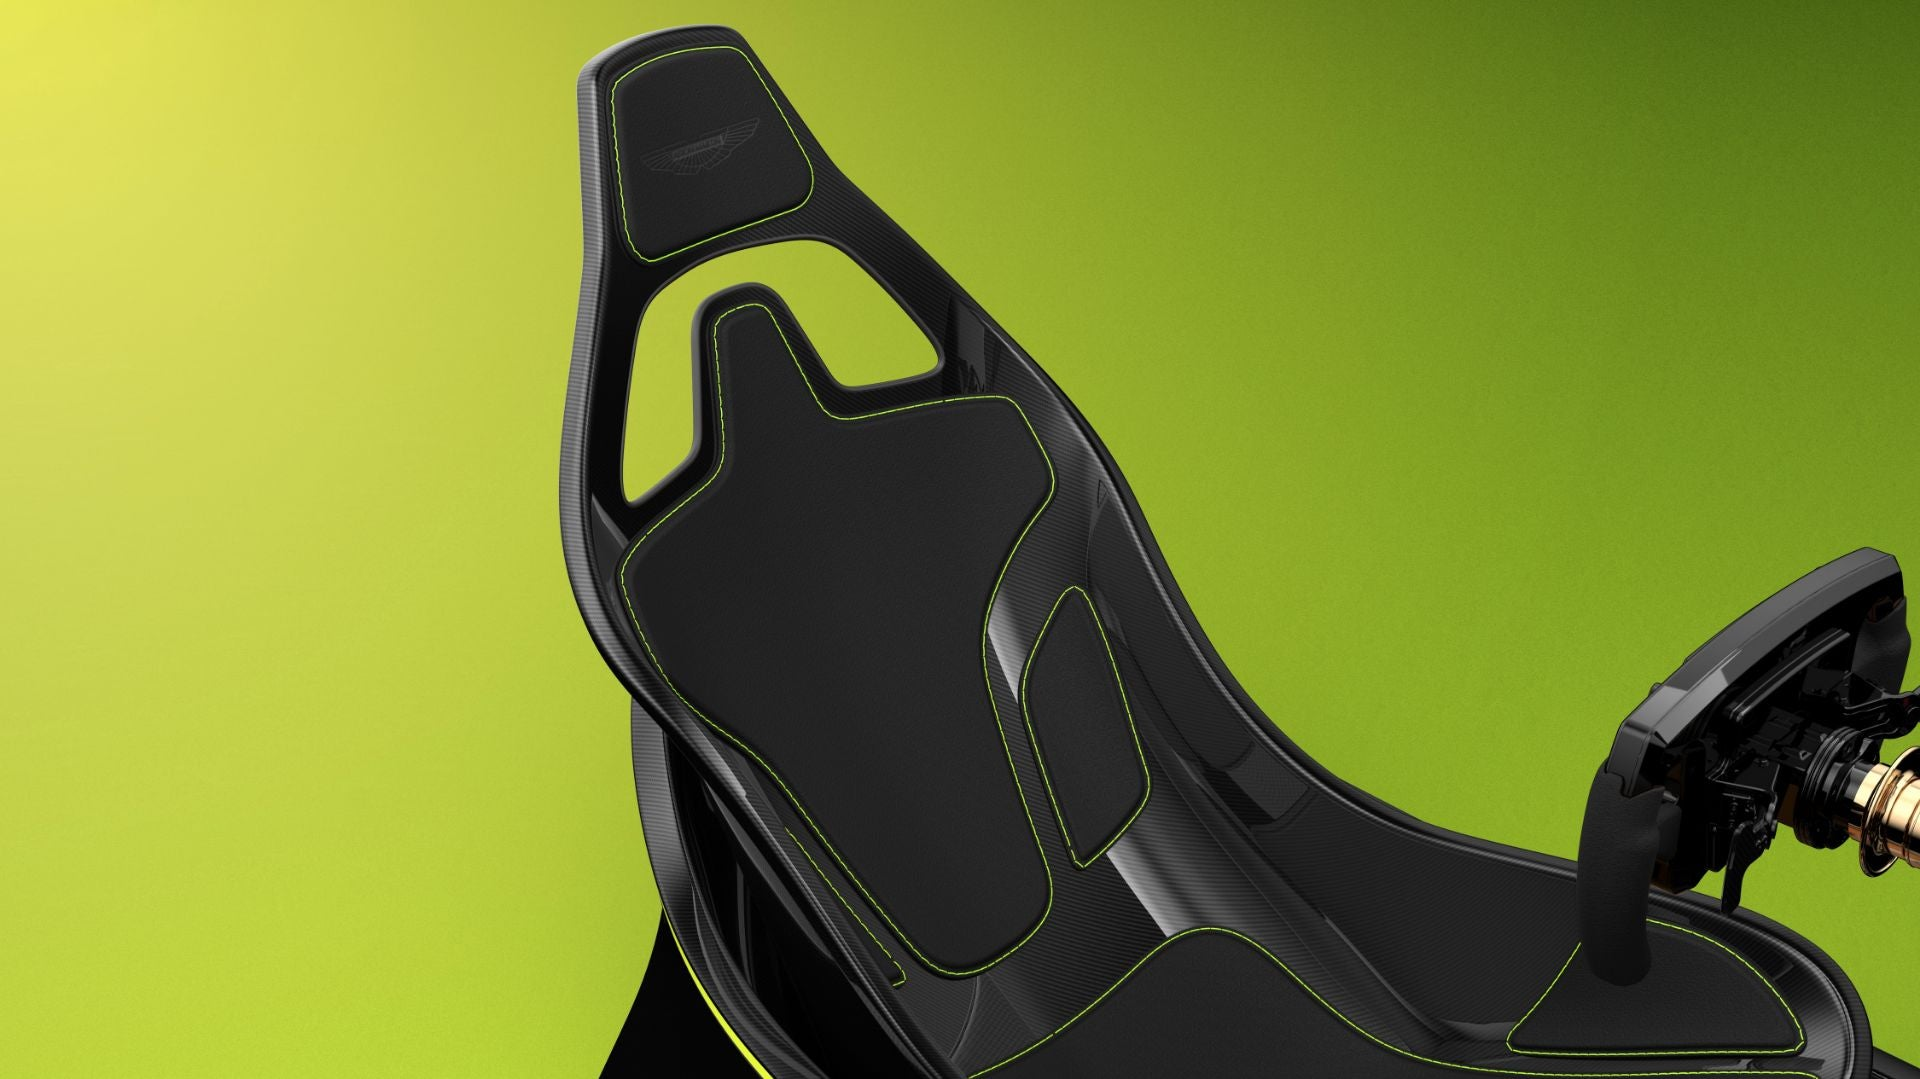 The Aston Martin Amr C01 Is A Carbon Fiber Racing Sim Rig Modeled After The Valkyrie Hypercar